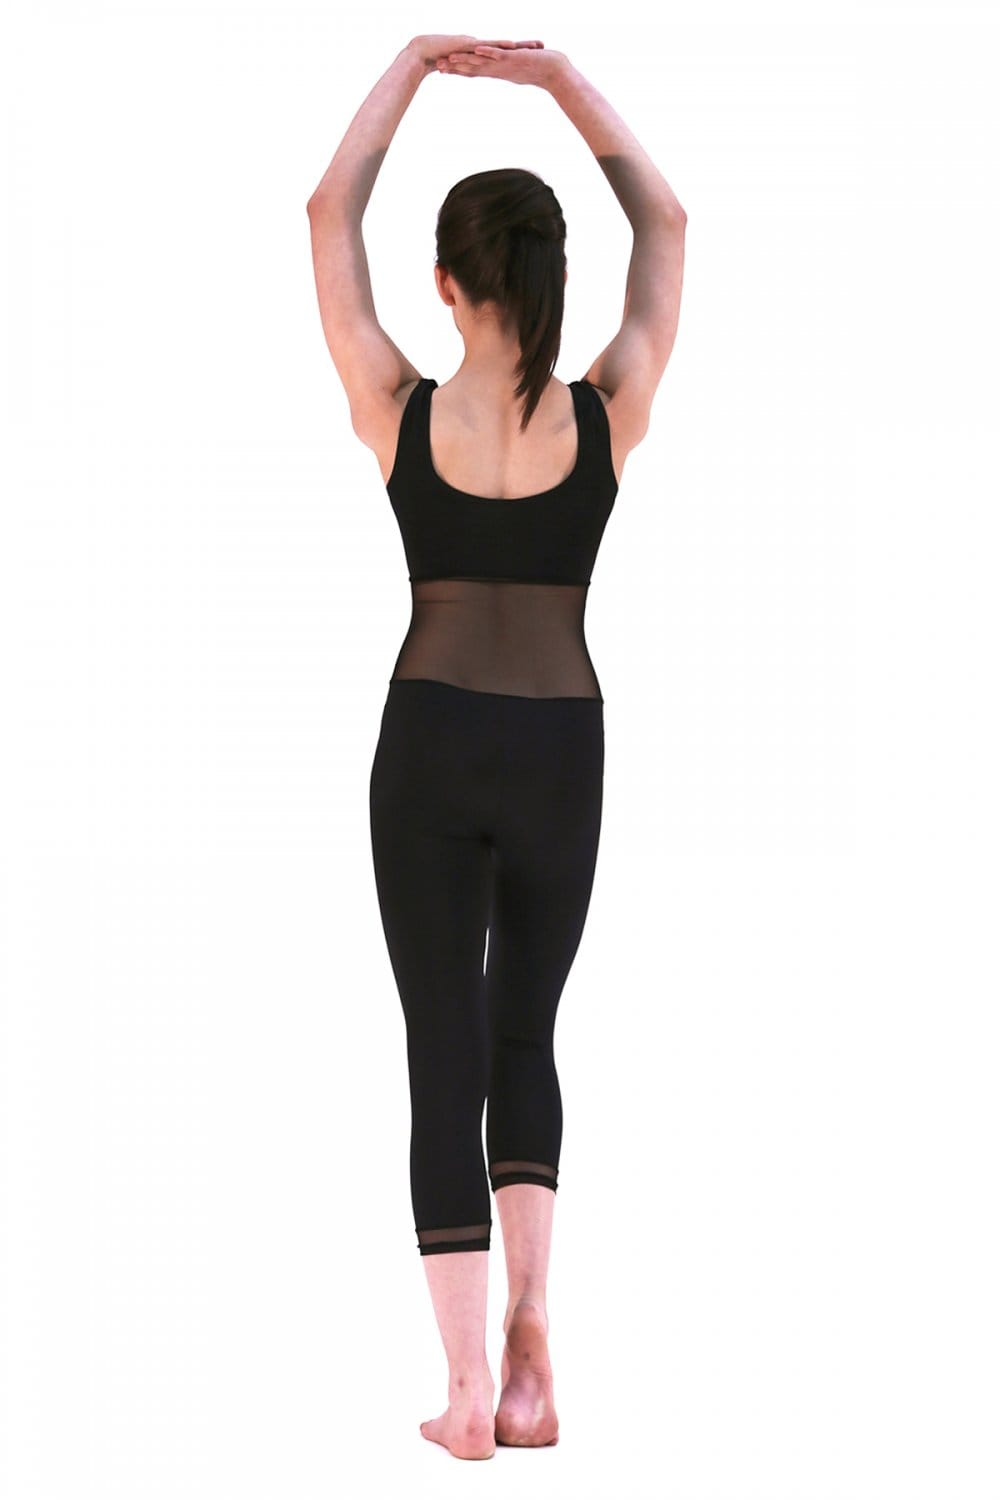 da83ac6e4 With a good deal of emphasis on technical fabrics like their moisture  wicking cottons, which hold their shape, ensuring Dans-ez garments provide  the dancer ...